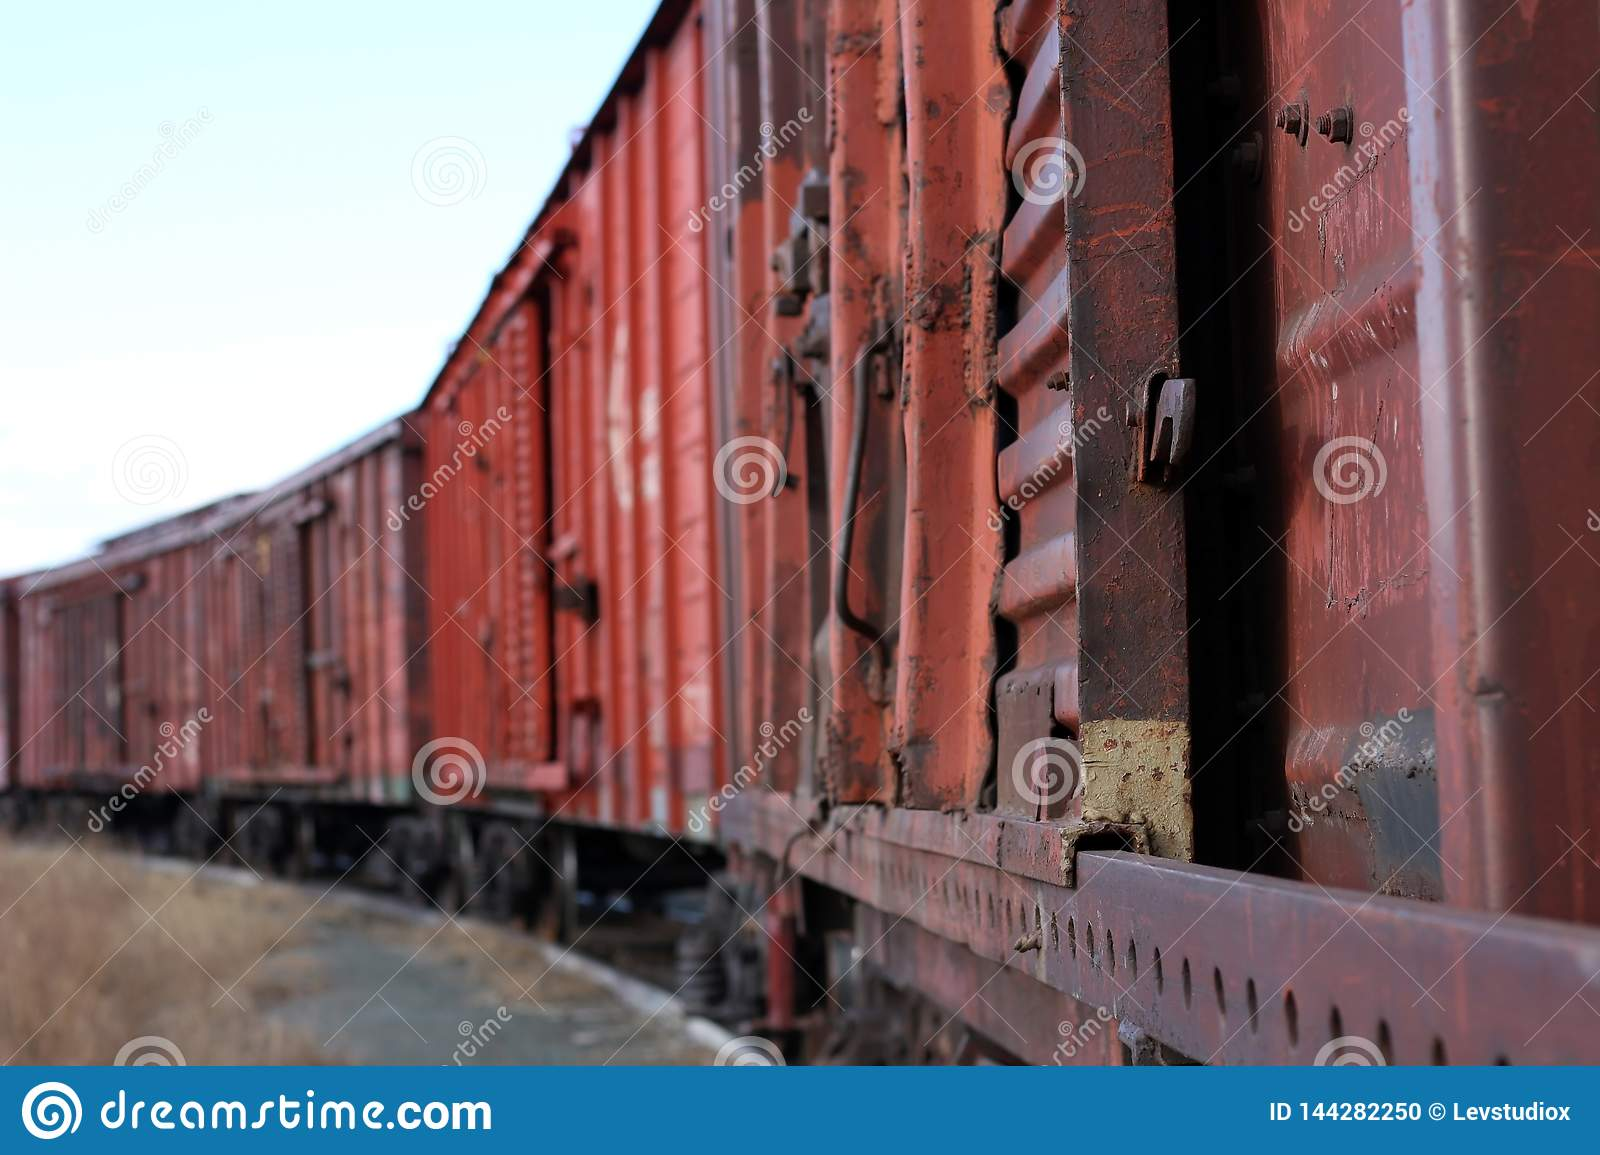 Old rusty freight train stands on rails